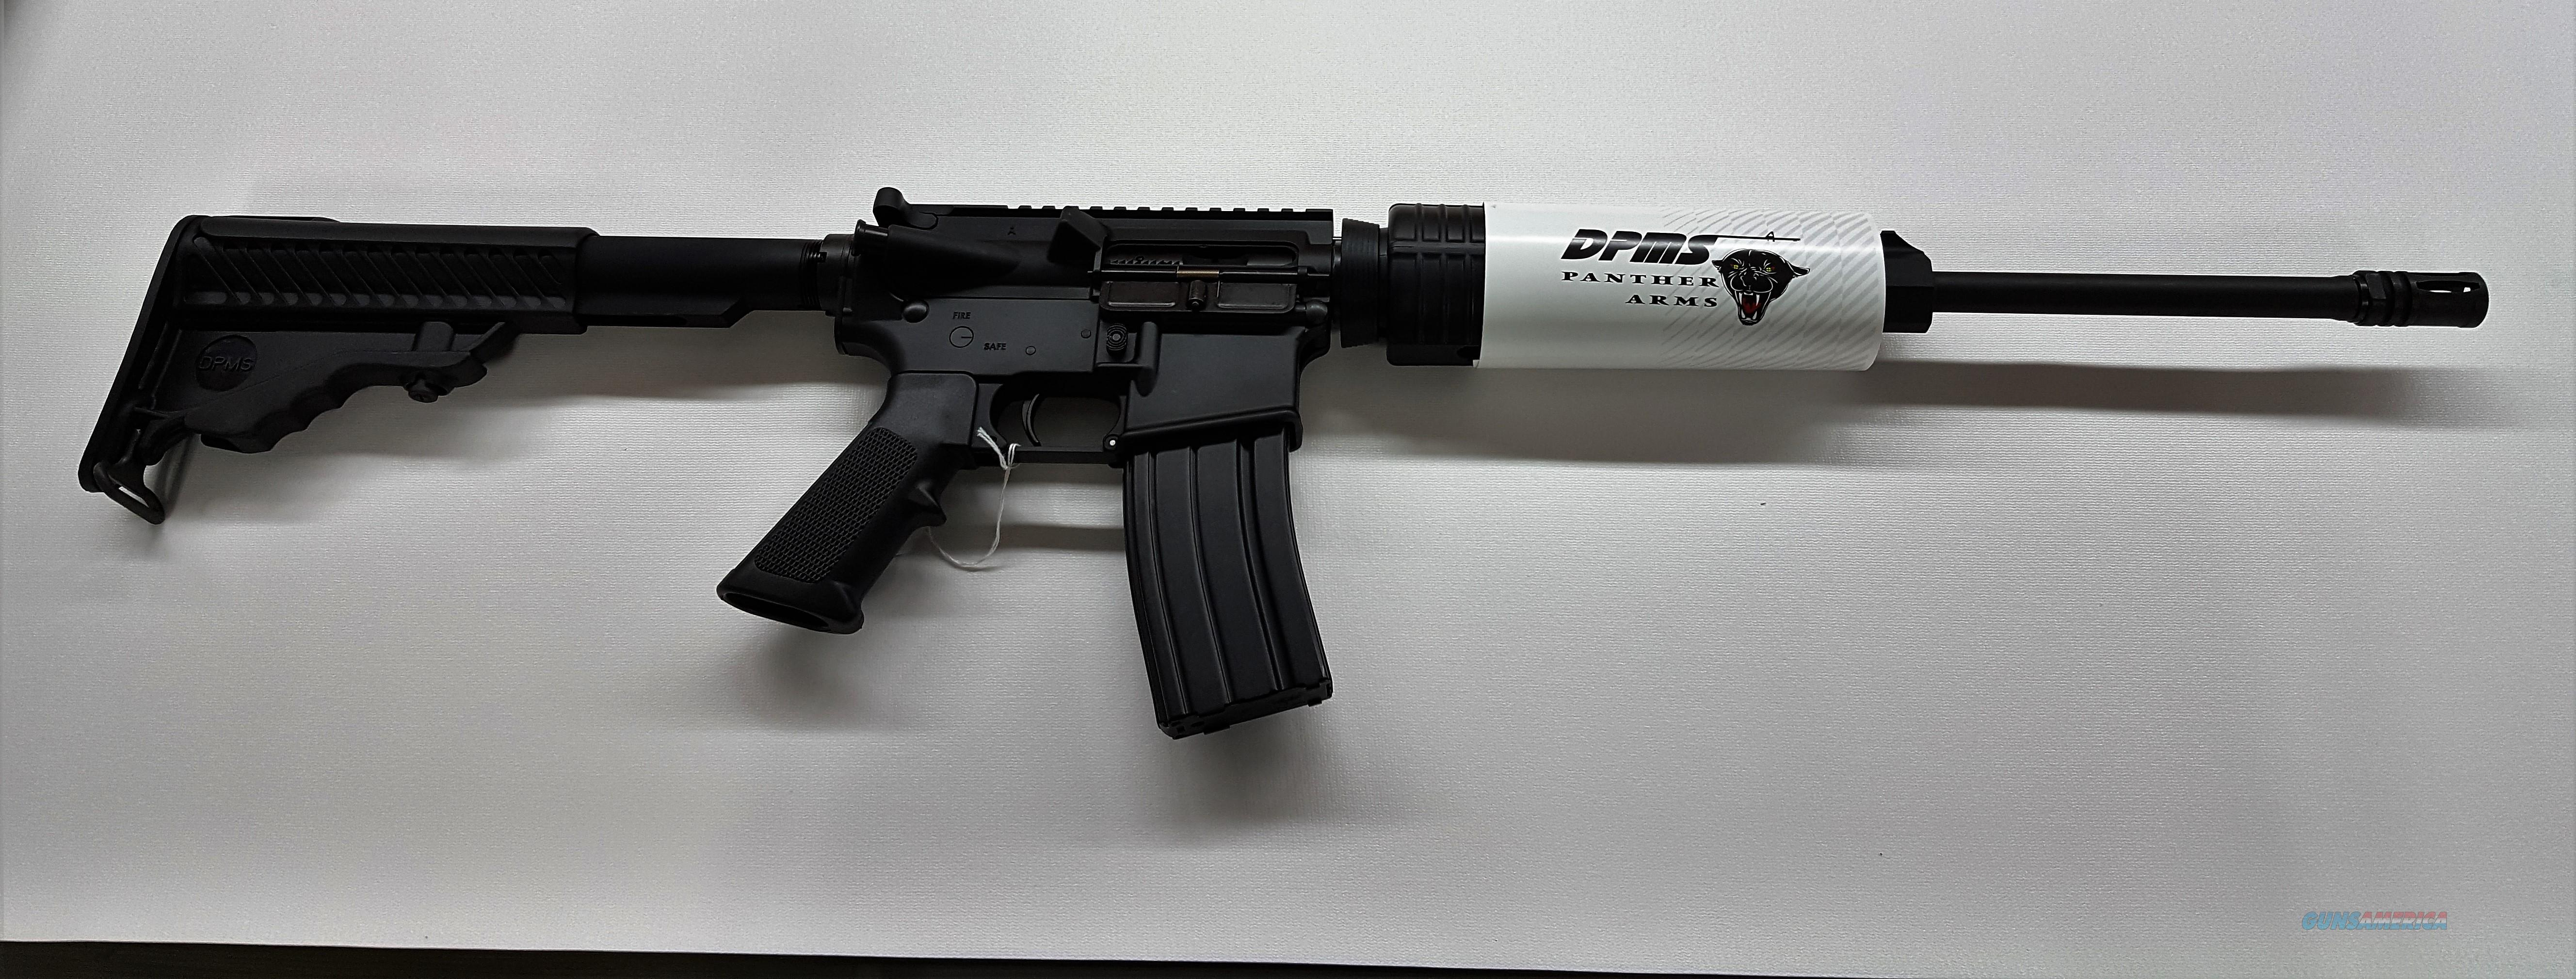 DPMS-Panther Arms 223/5.56  Guns > Rifles > DPMS - Panther Arms > Complete Rifle